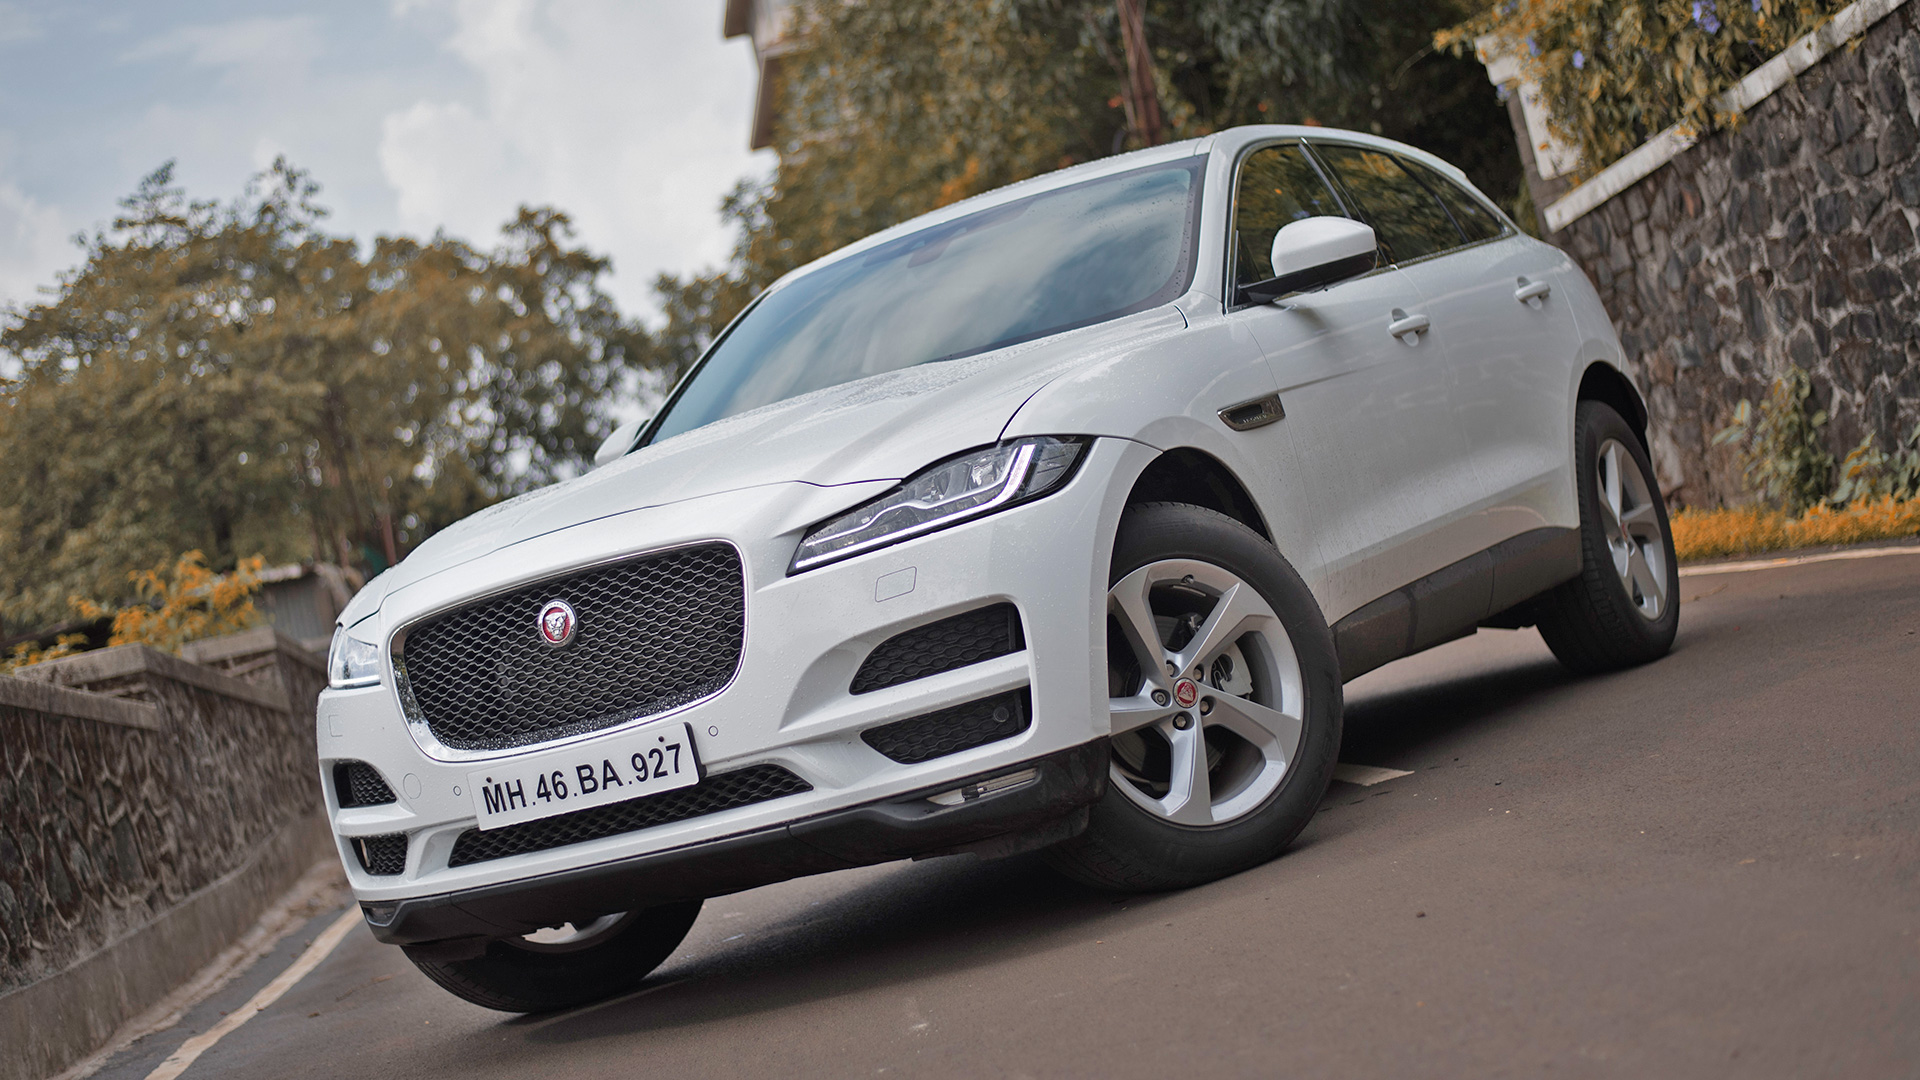 jaguar f pace 2017 price mileage reviews specification gallery overdrive. Black Bedroom Furniture Sets. Home Design Ideas